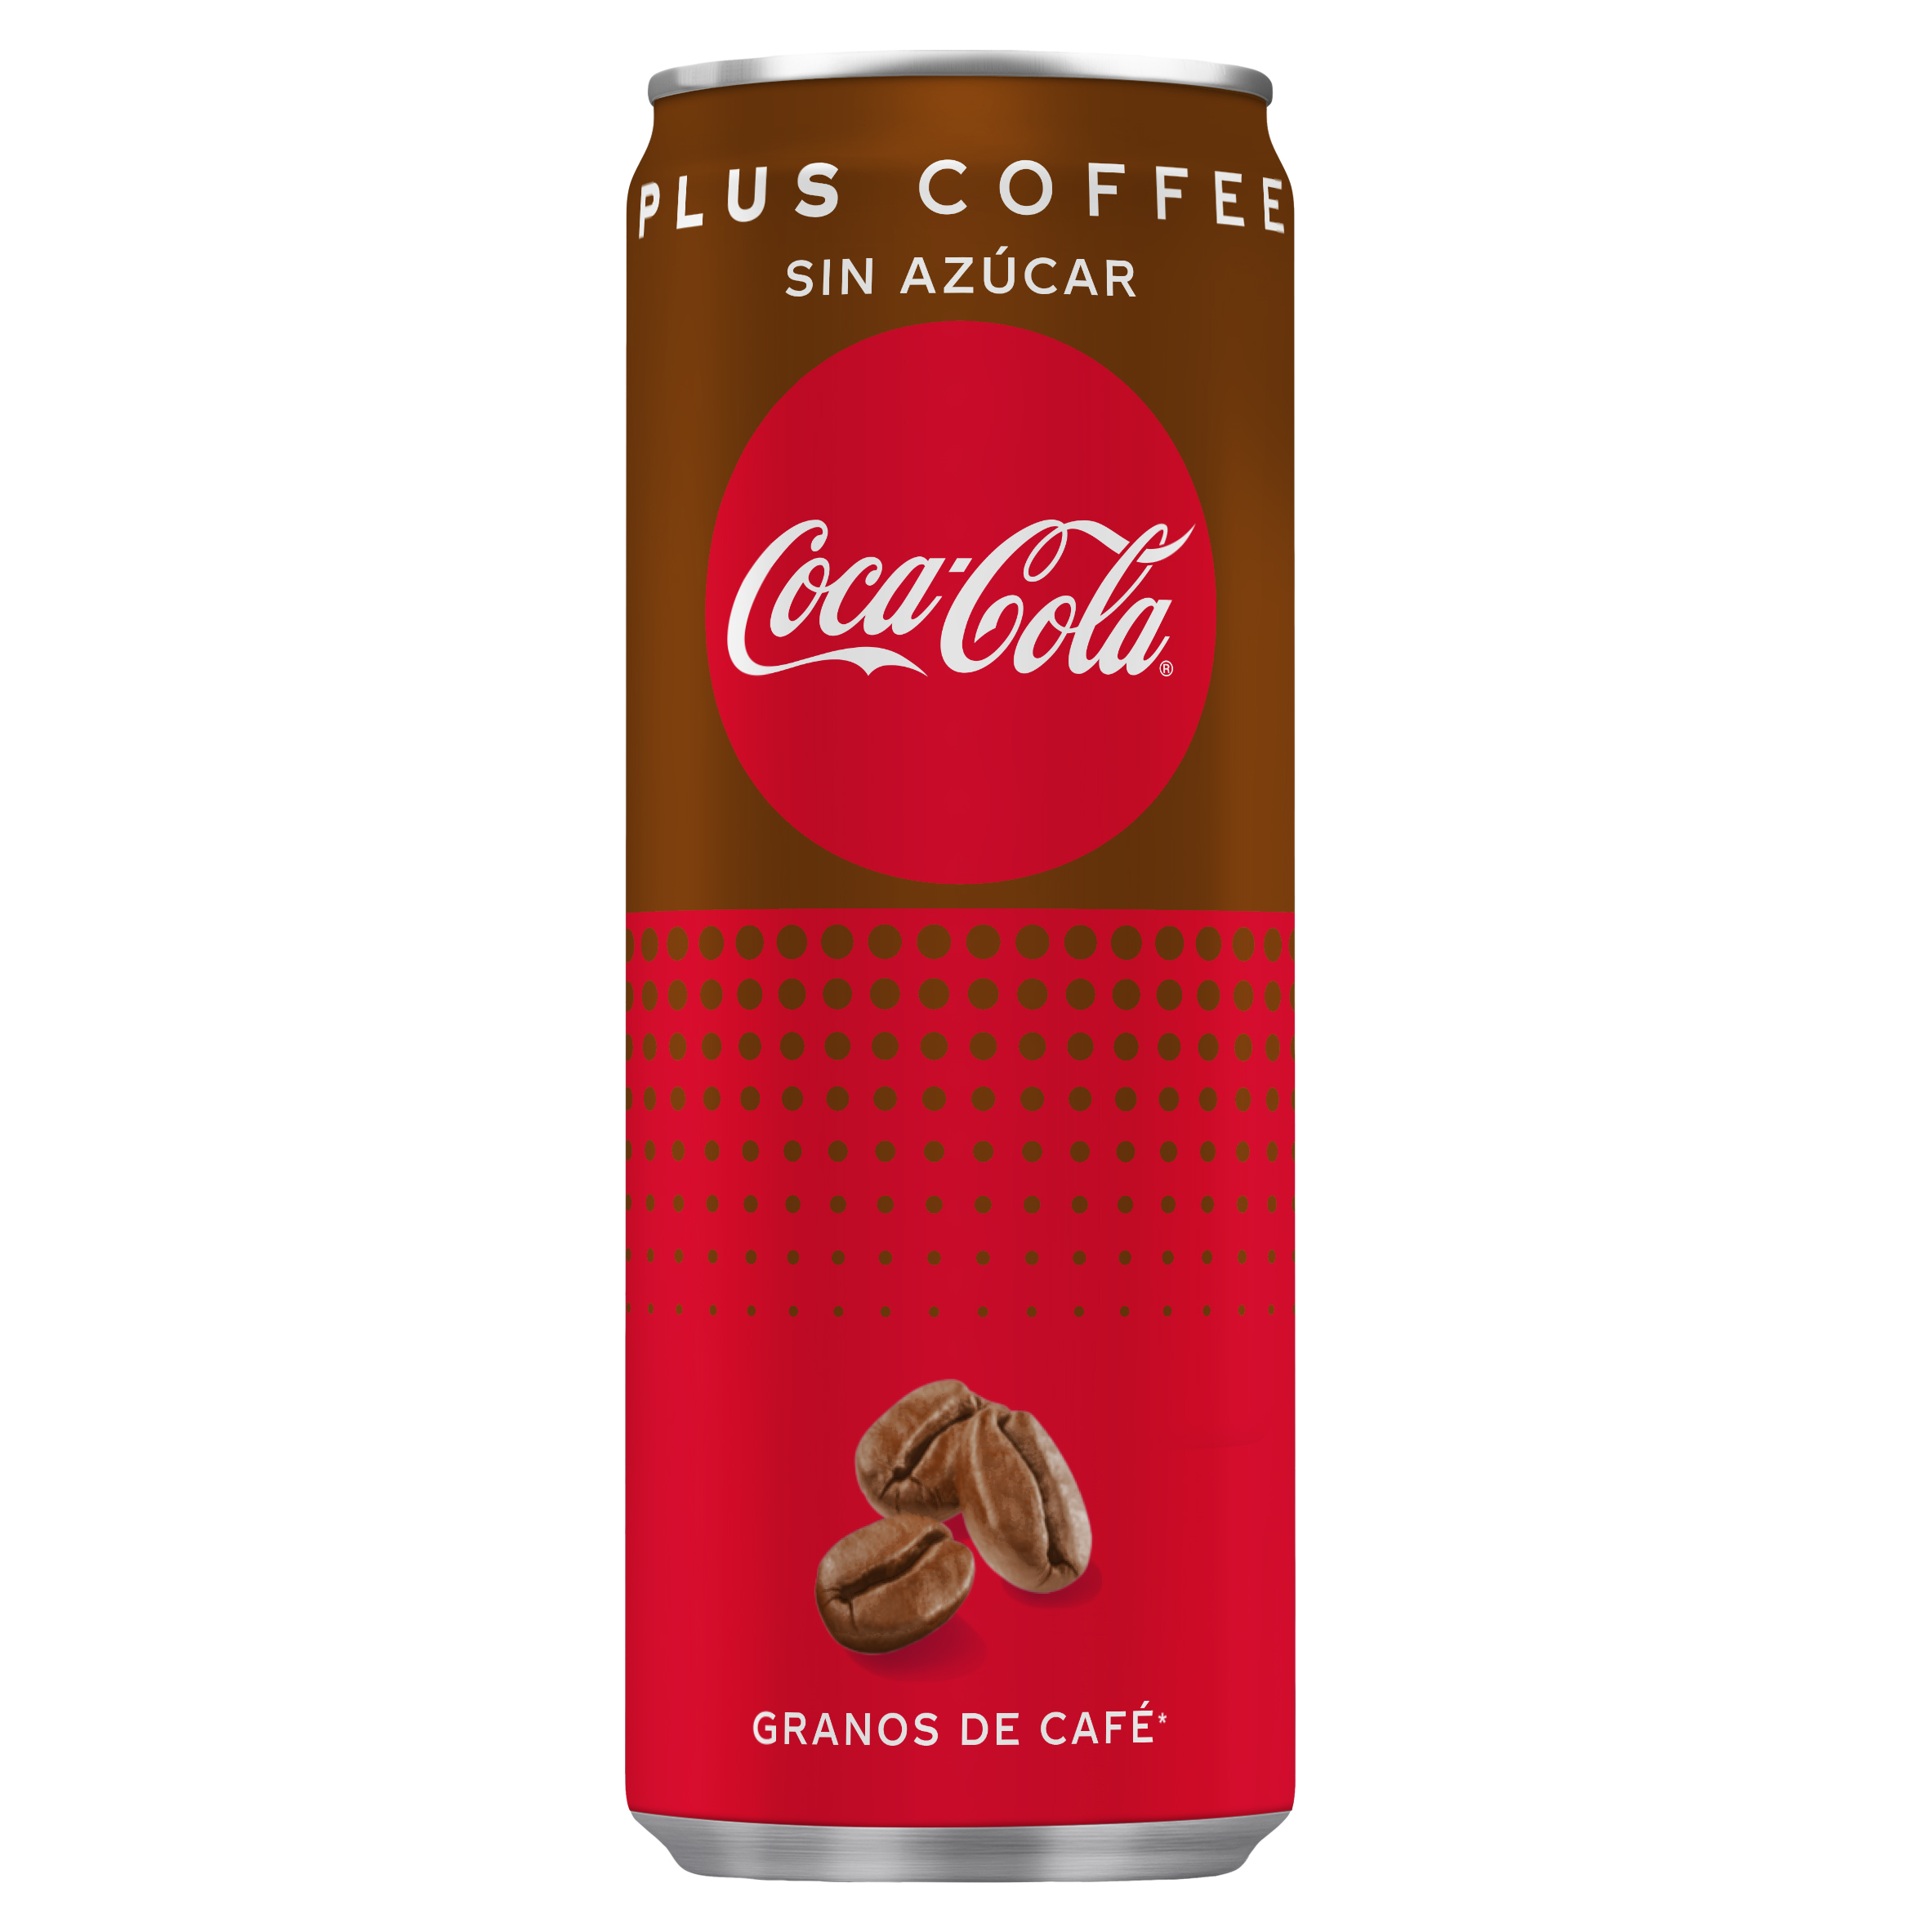 Coca Cola refresco cola plus coffee de 25cl.